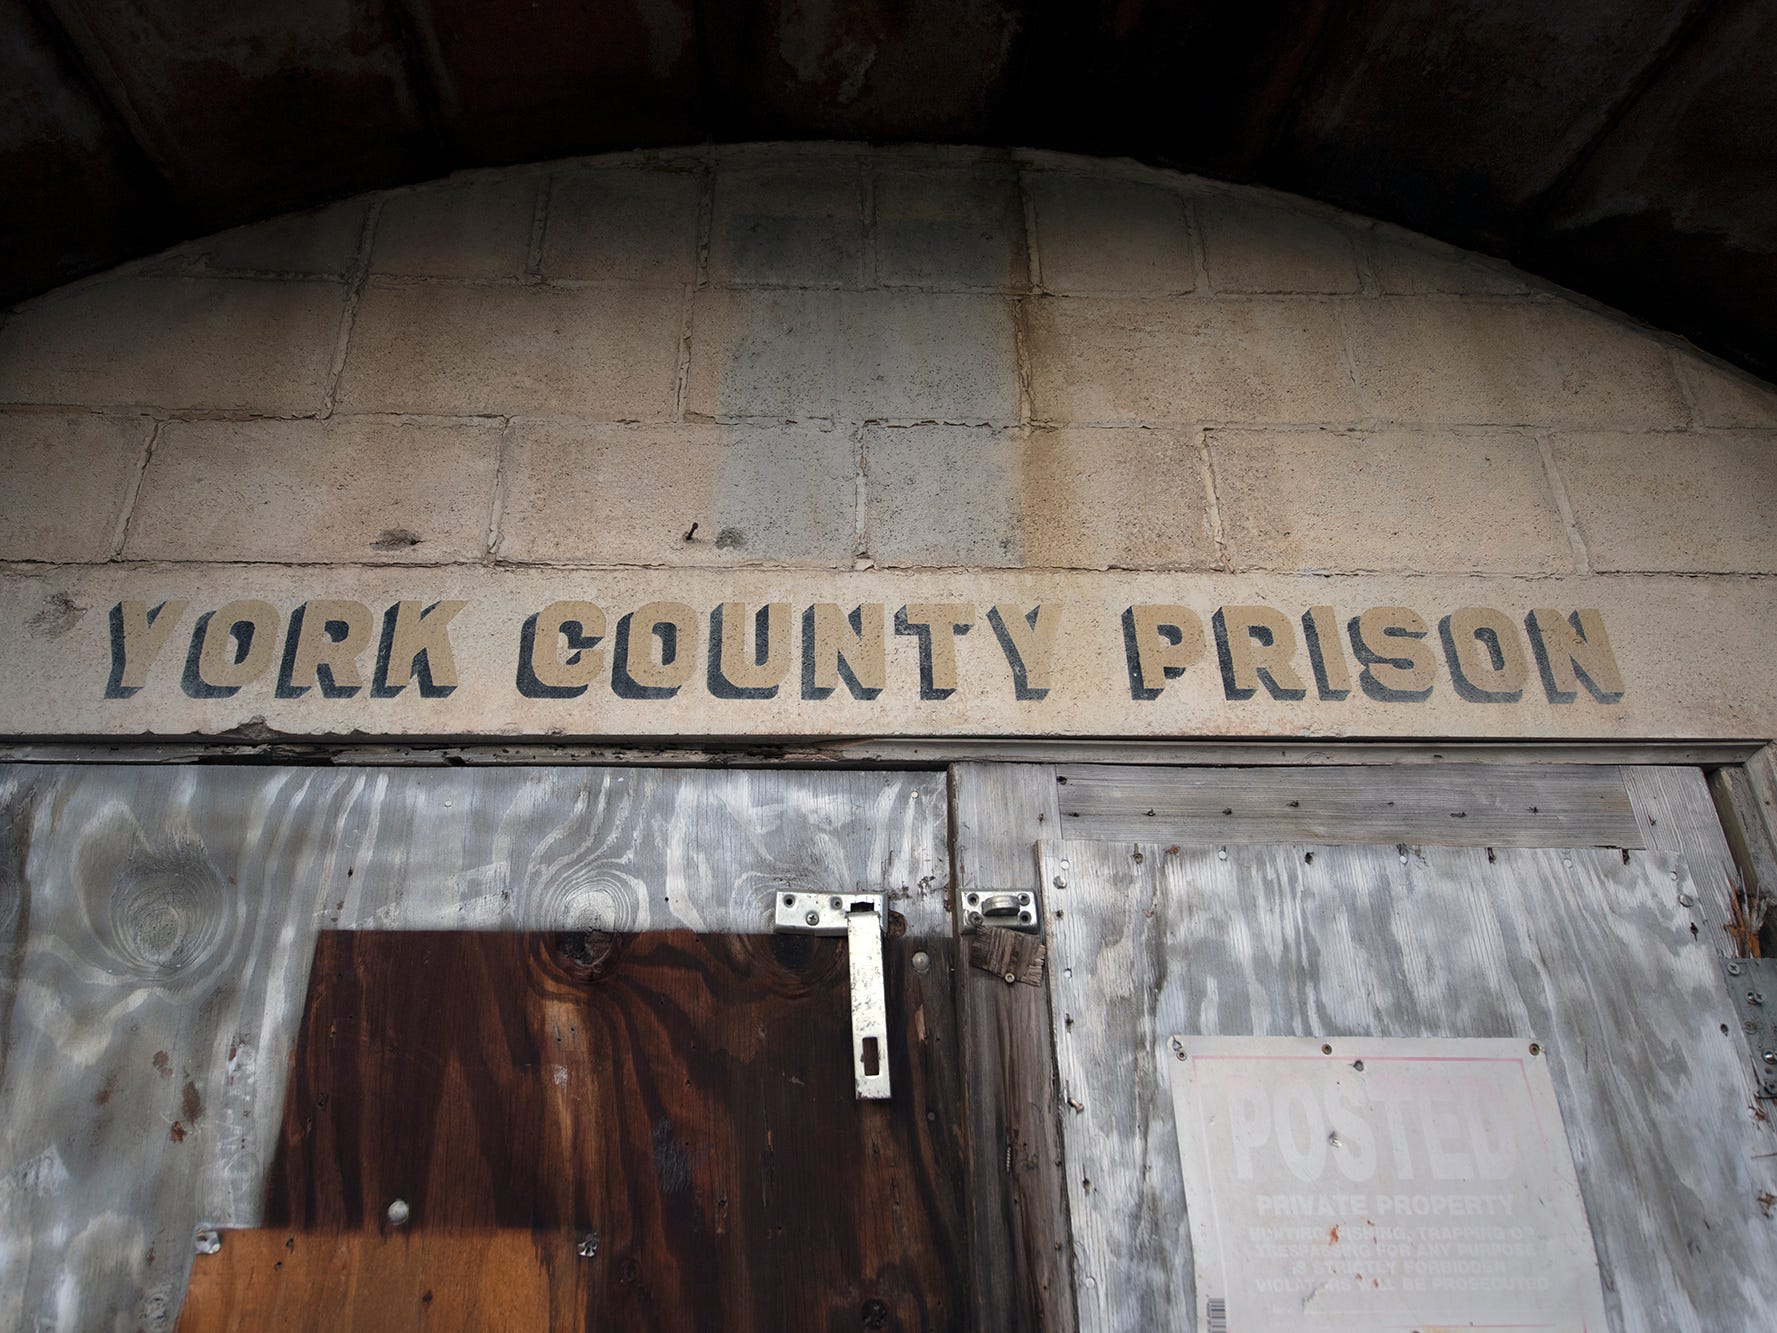 The front entrance still says York County Prison.